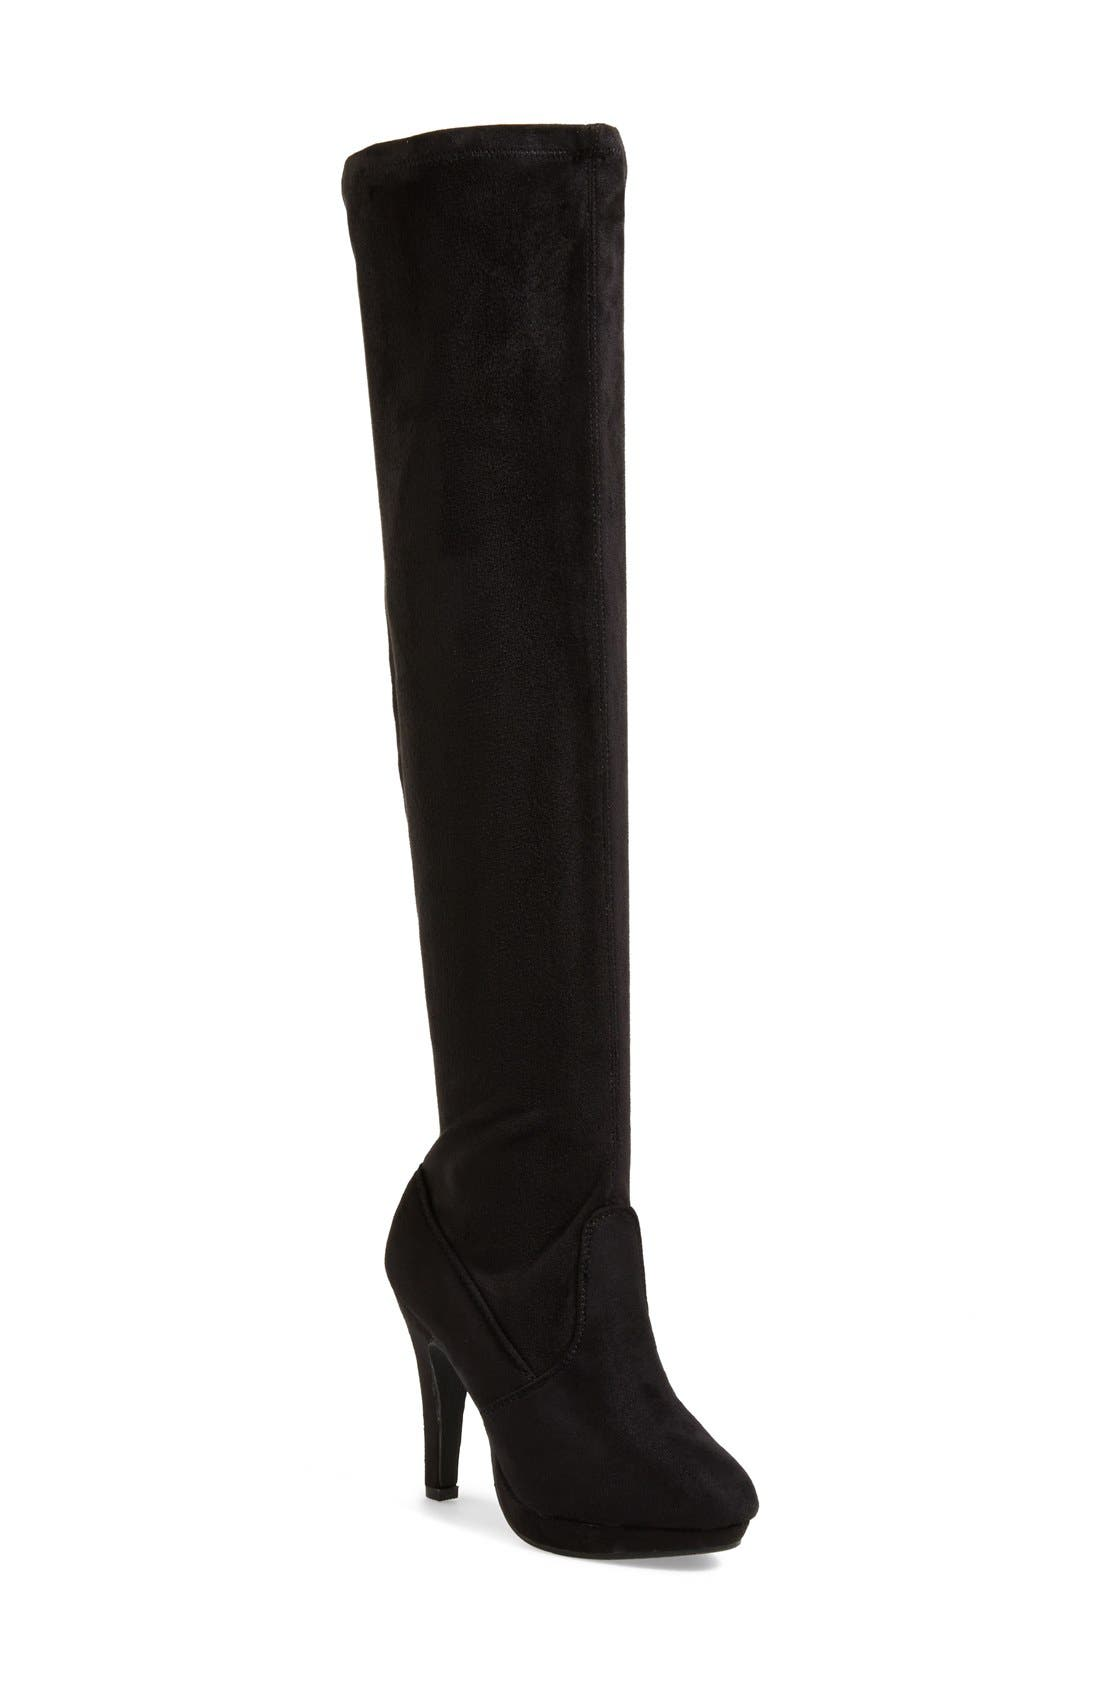 REPORT 'Nadya' Over The Knee Boot,                         Main,                         color, 001